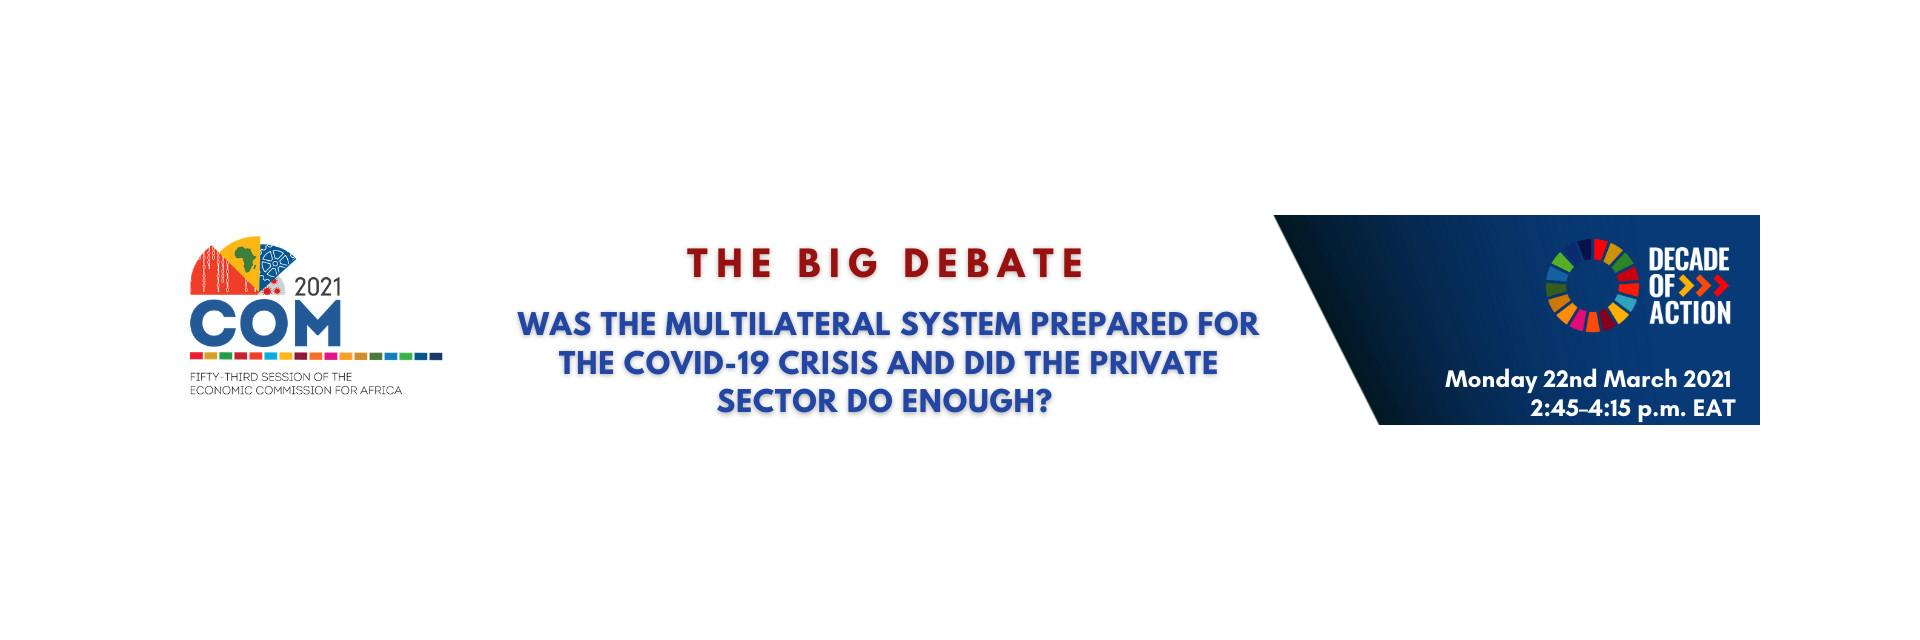 The Big Debate: Africa's post-COVID19 recovery will be a marathon, not a race